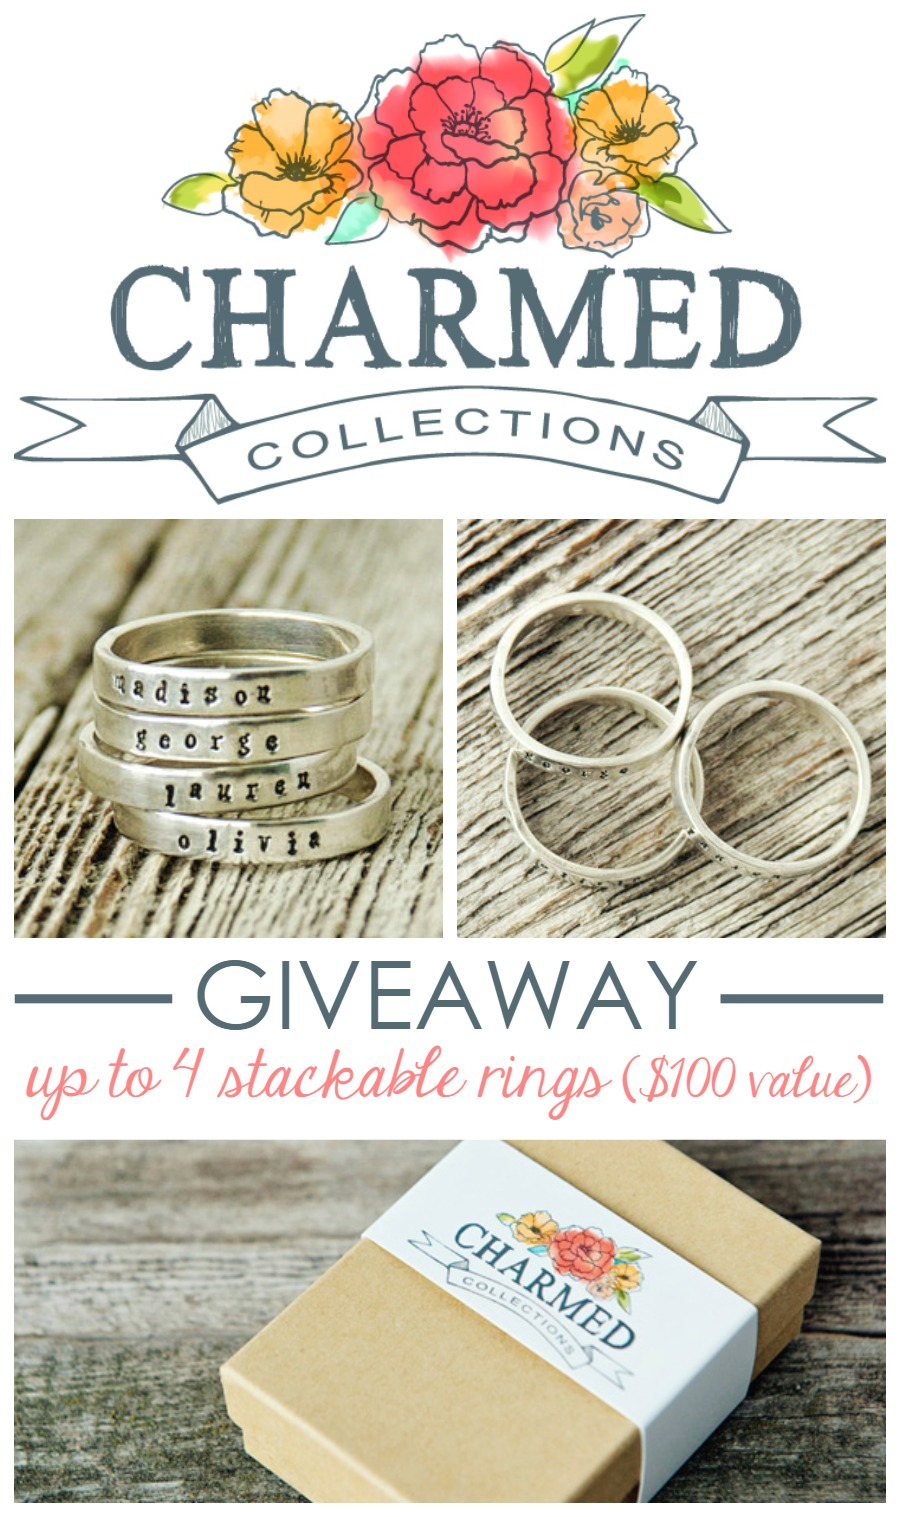 Charmed Collections Giveaway